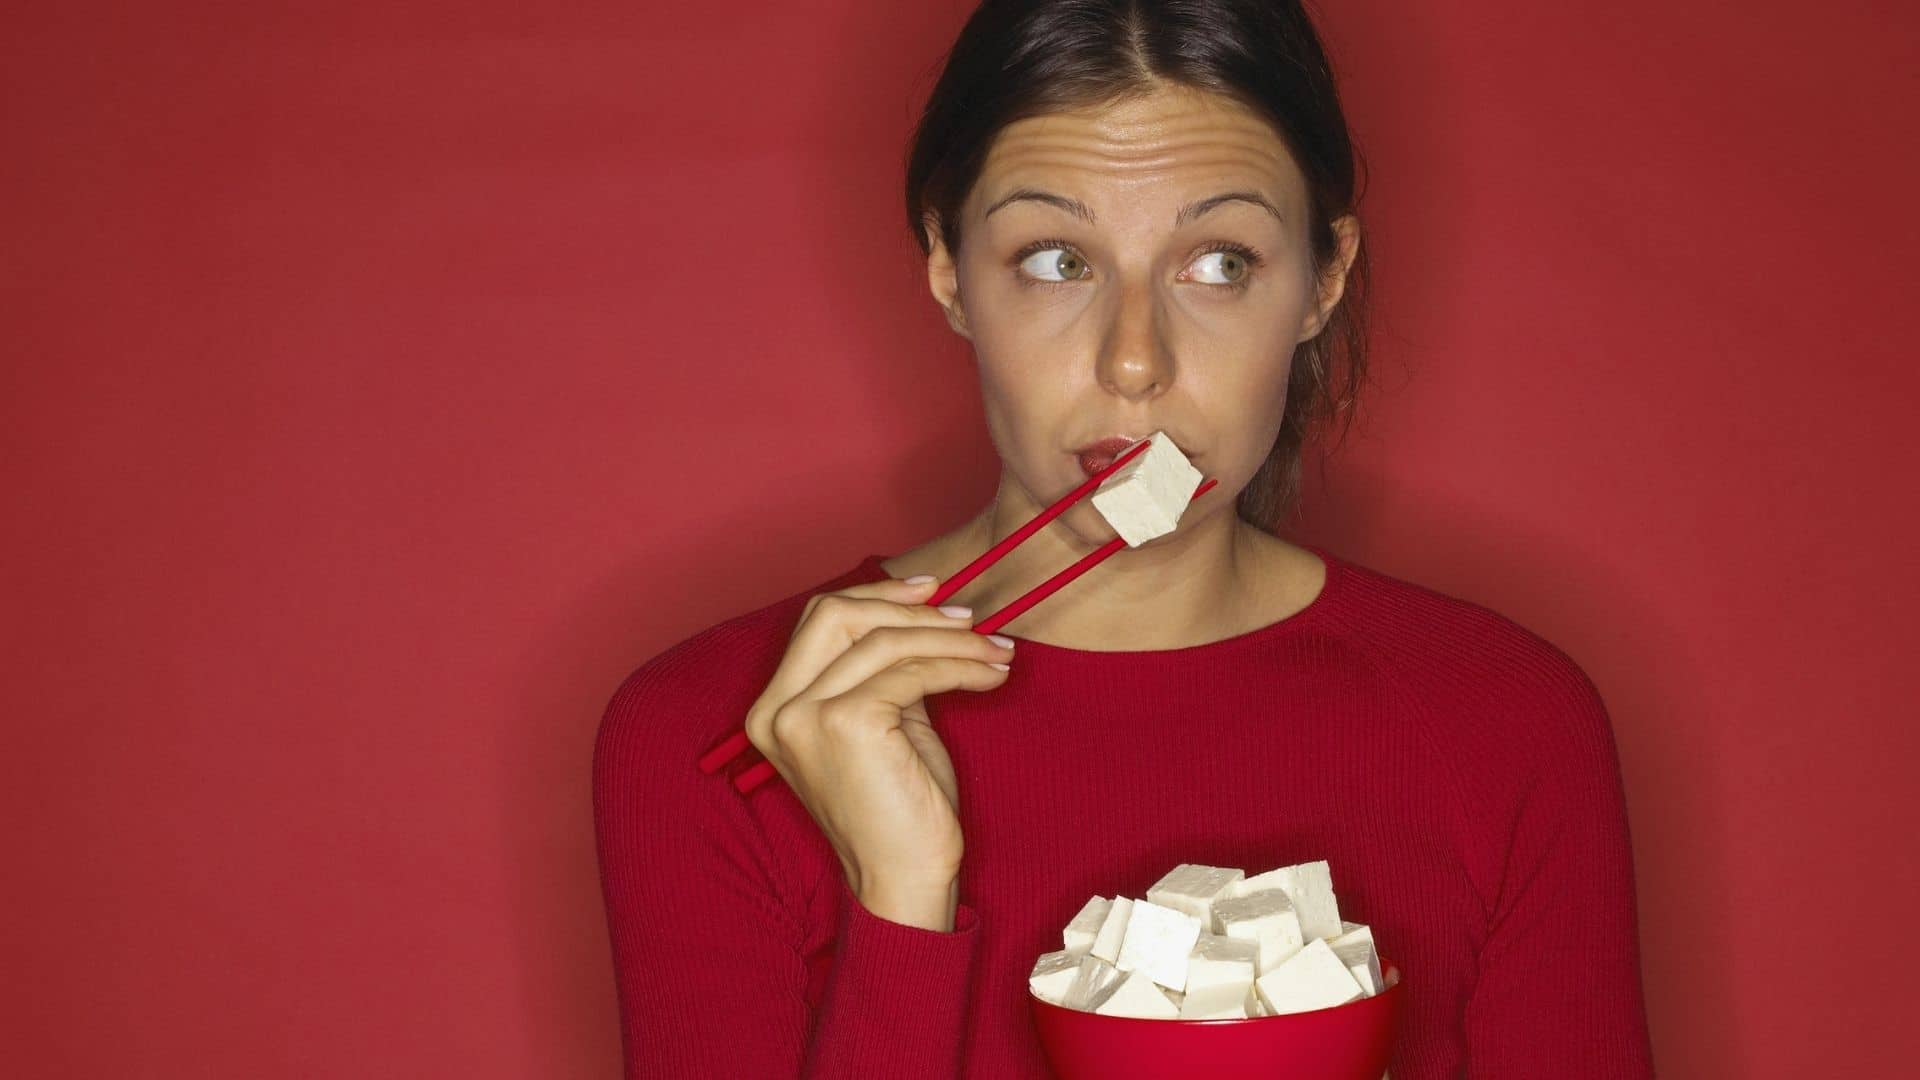 green-eyed woman in red top against a red background eats a bowl of tofu with chopsticks